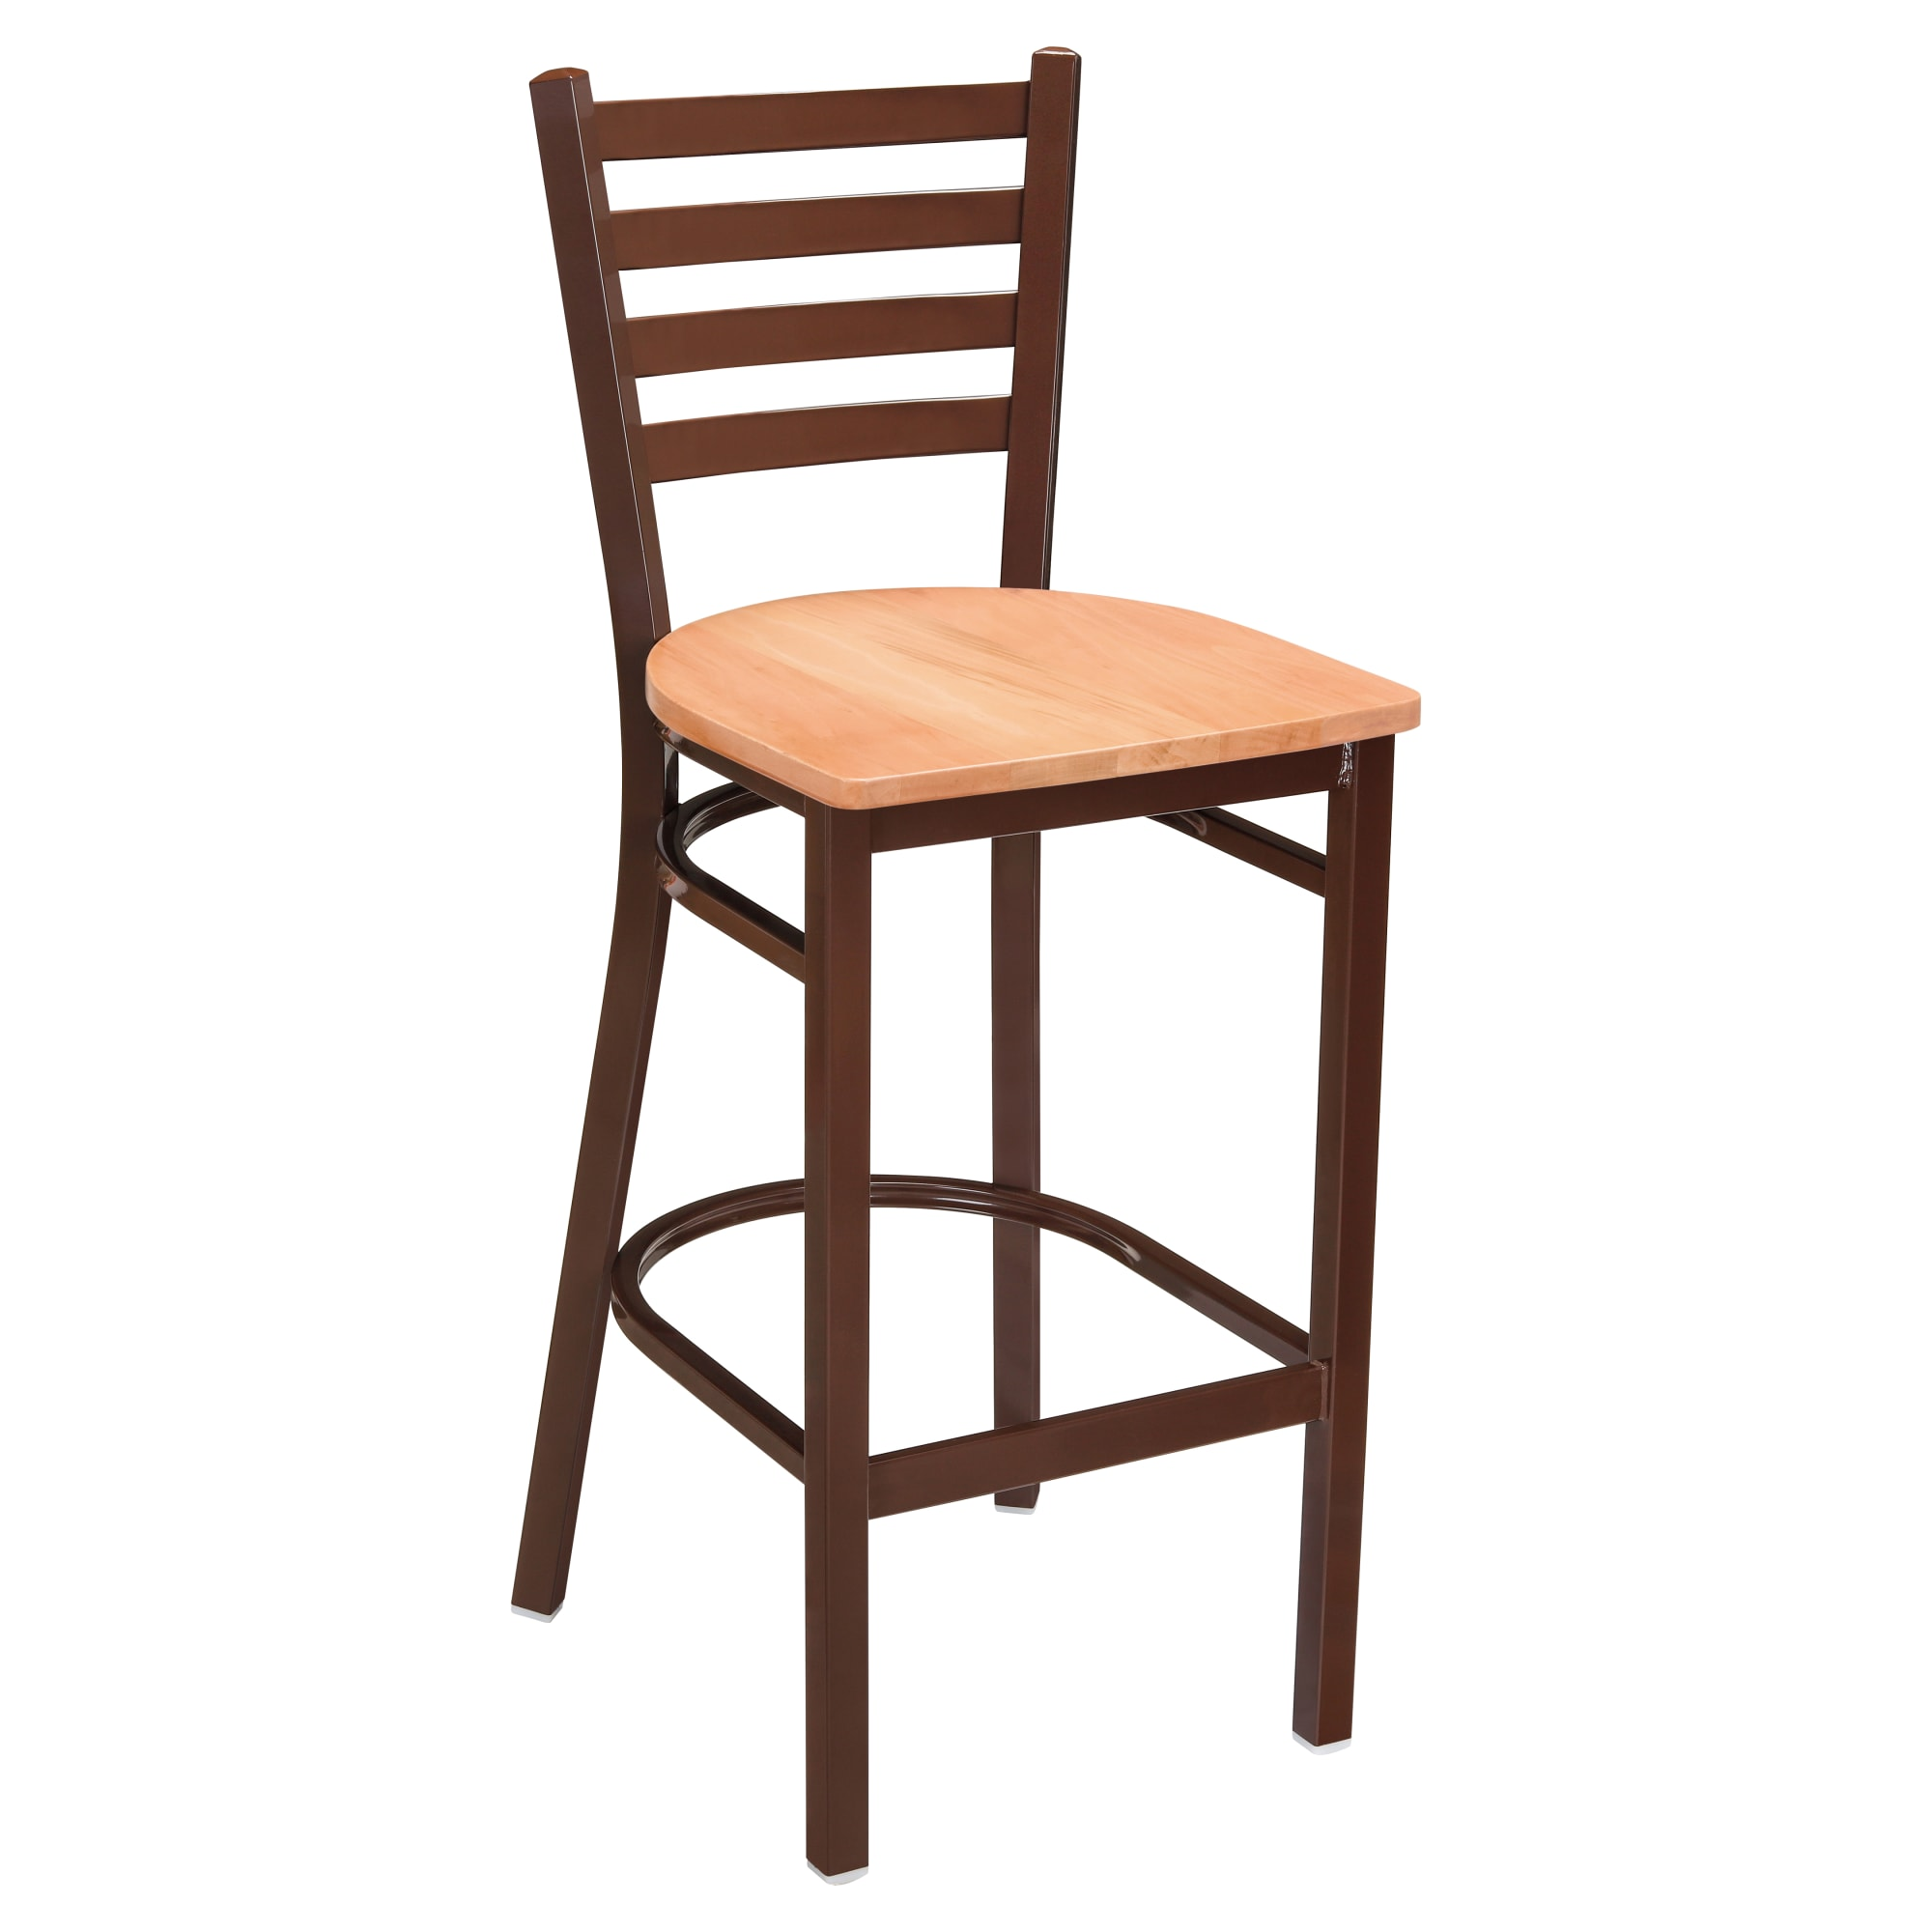 Ladder Back Metal Bar Stool With Brown Finish with Ladder Back Metal Bar Stool With Brown Finish